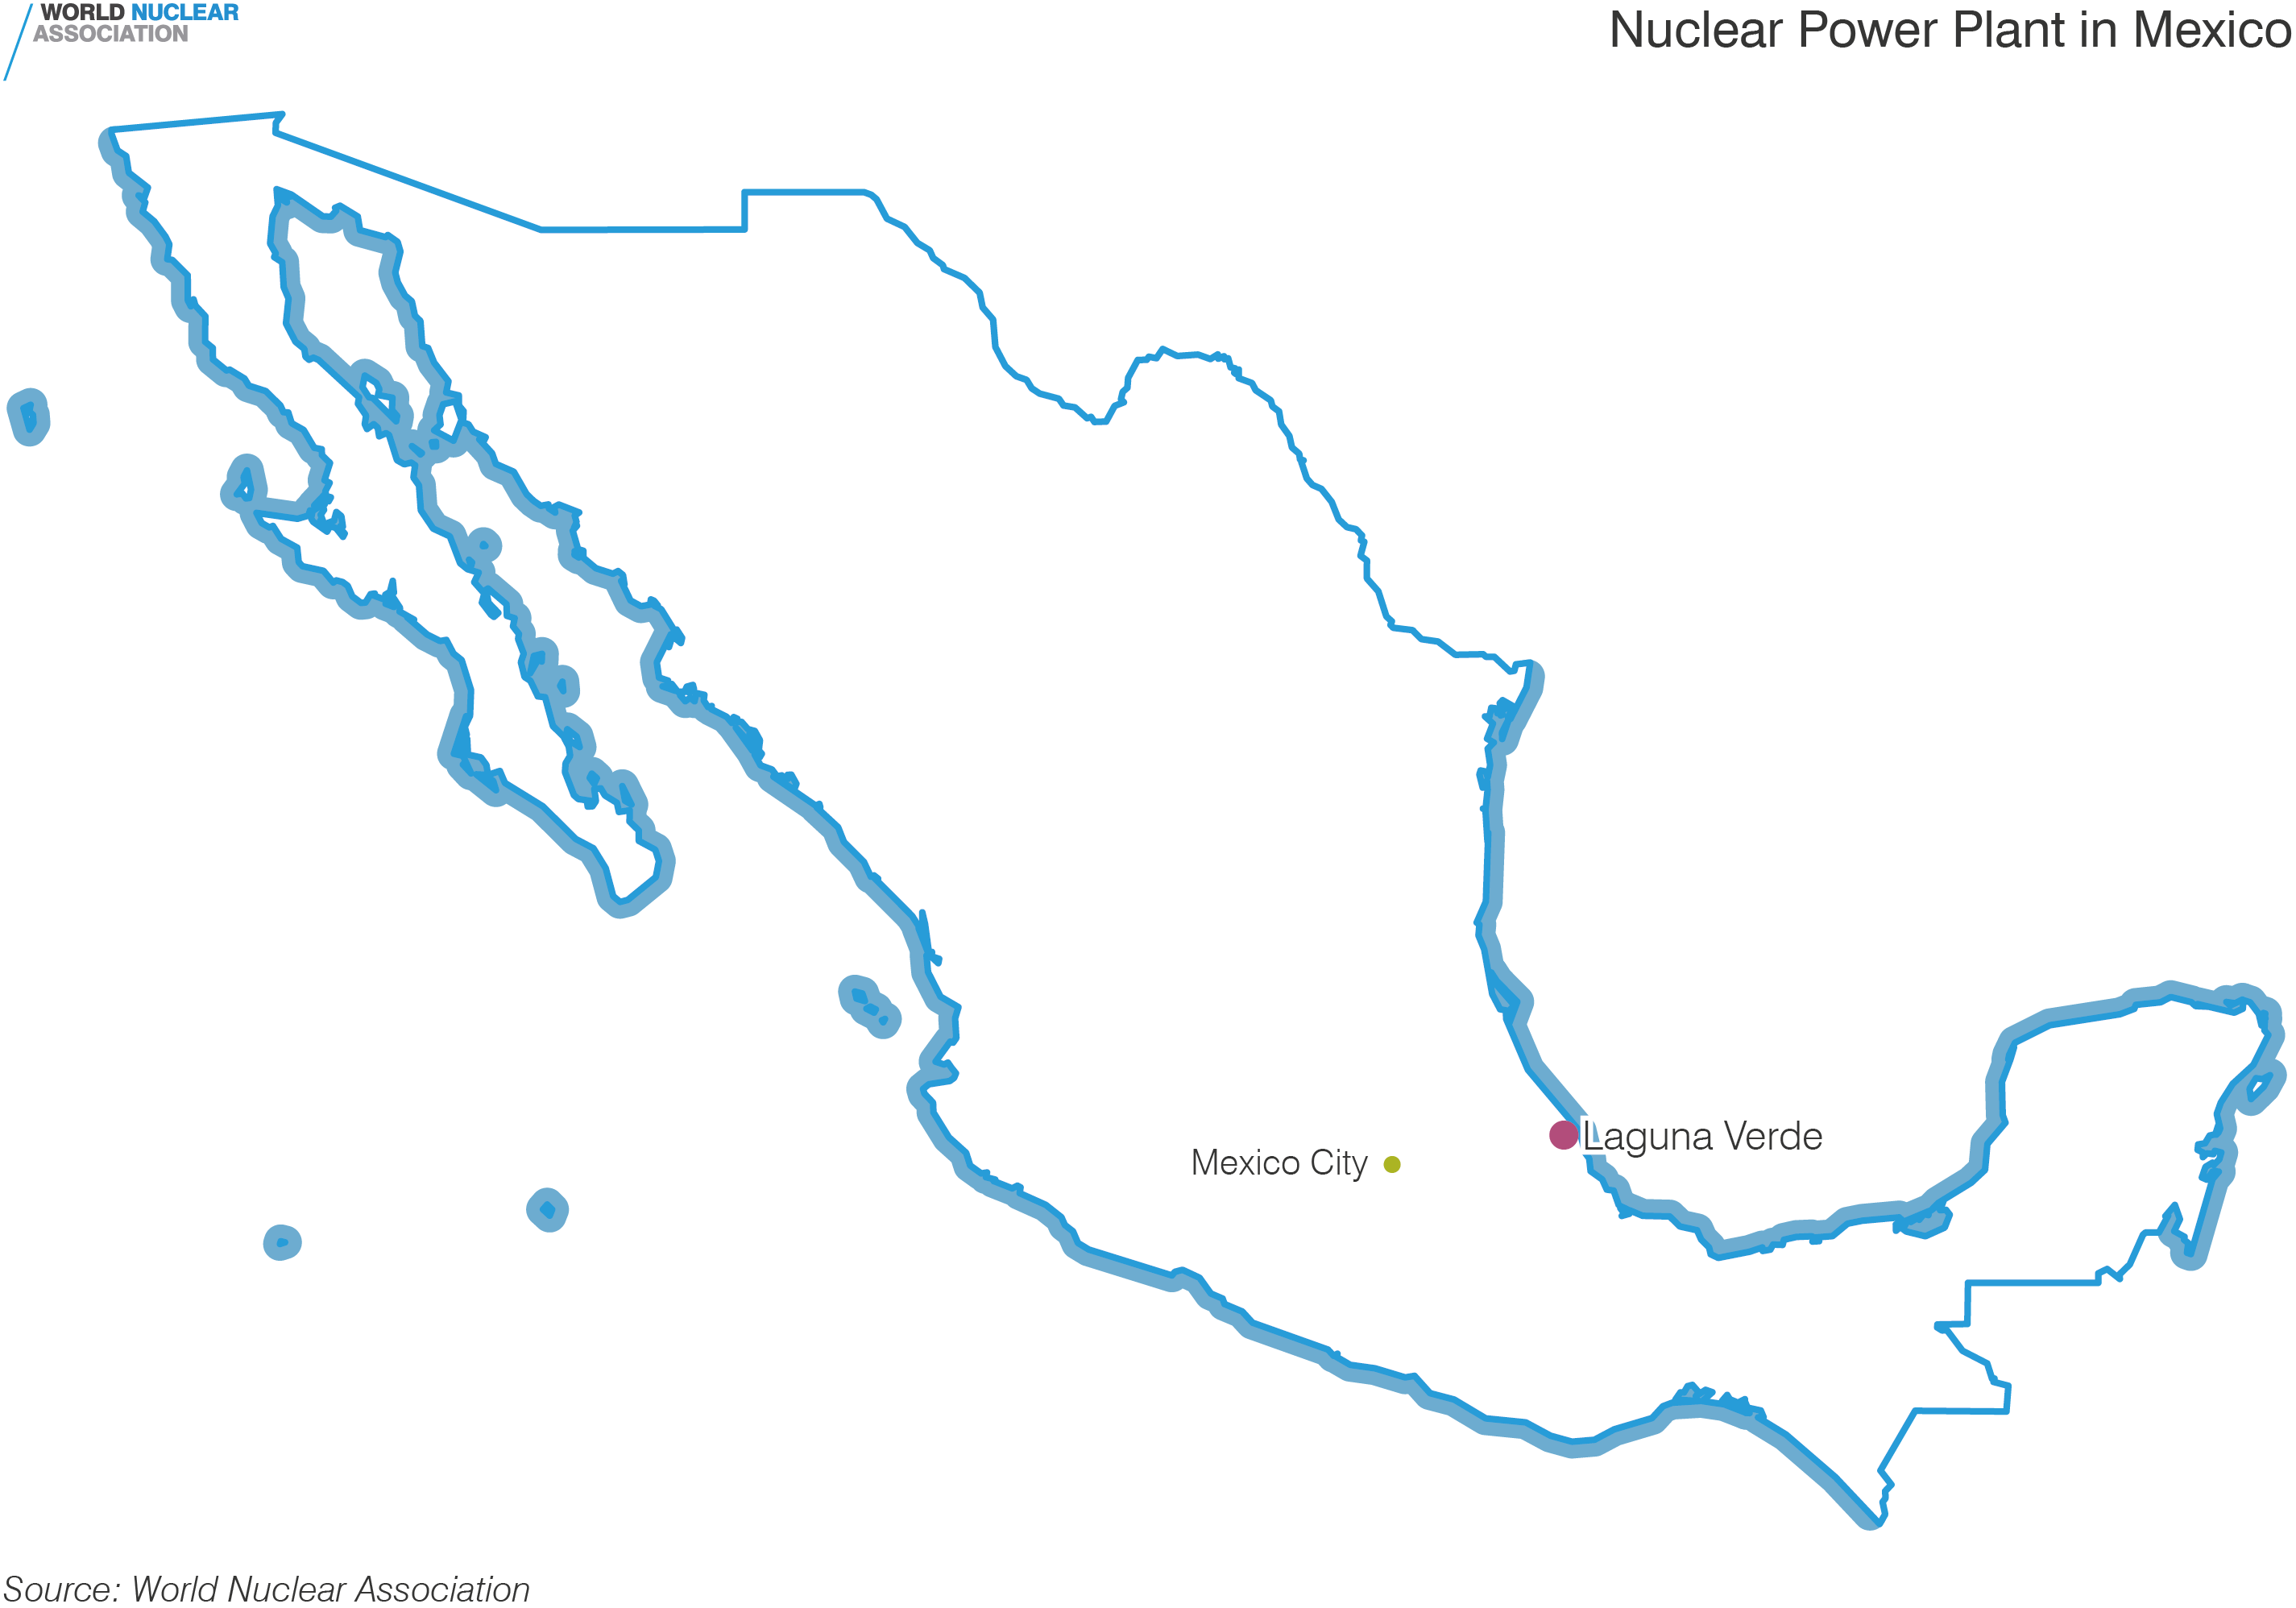 Nuclear Power Plant in Mexico